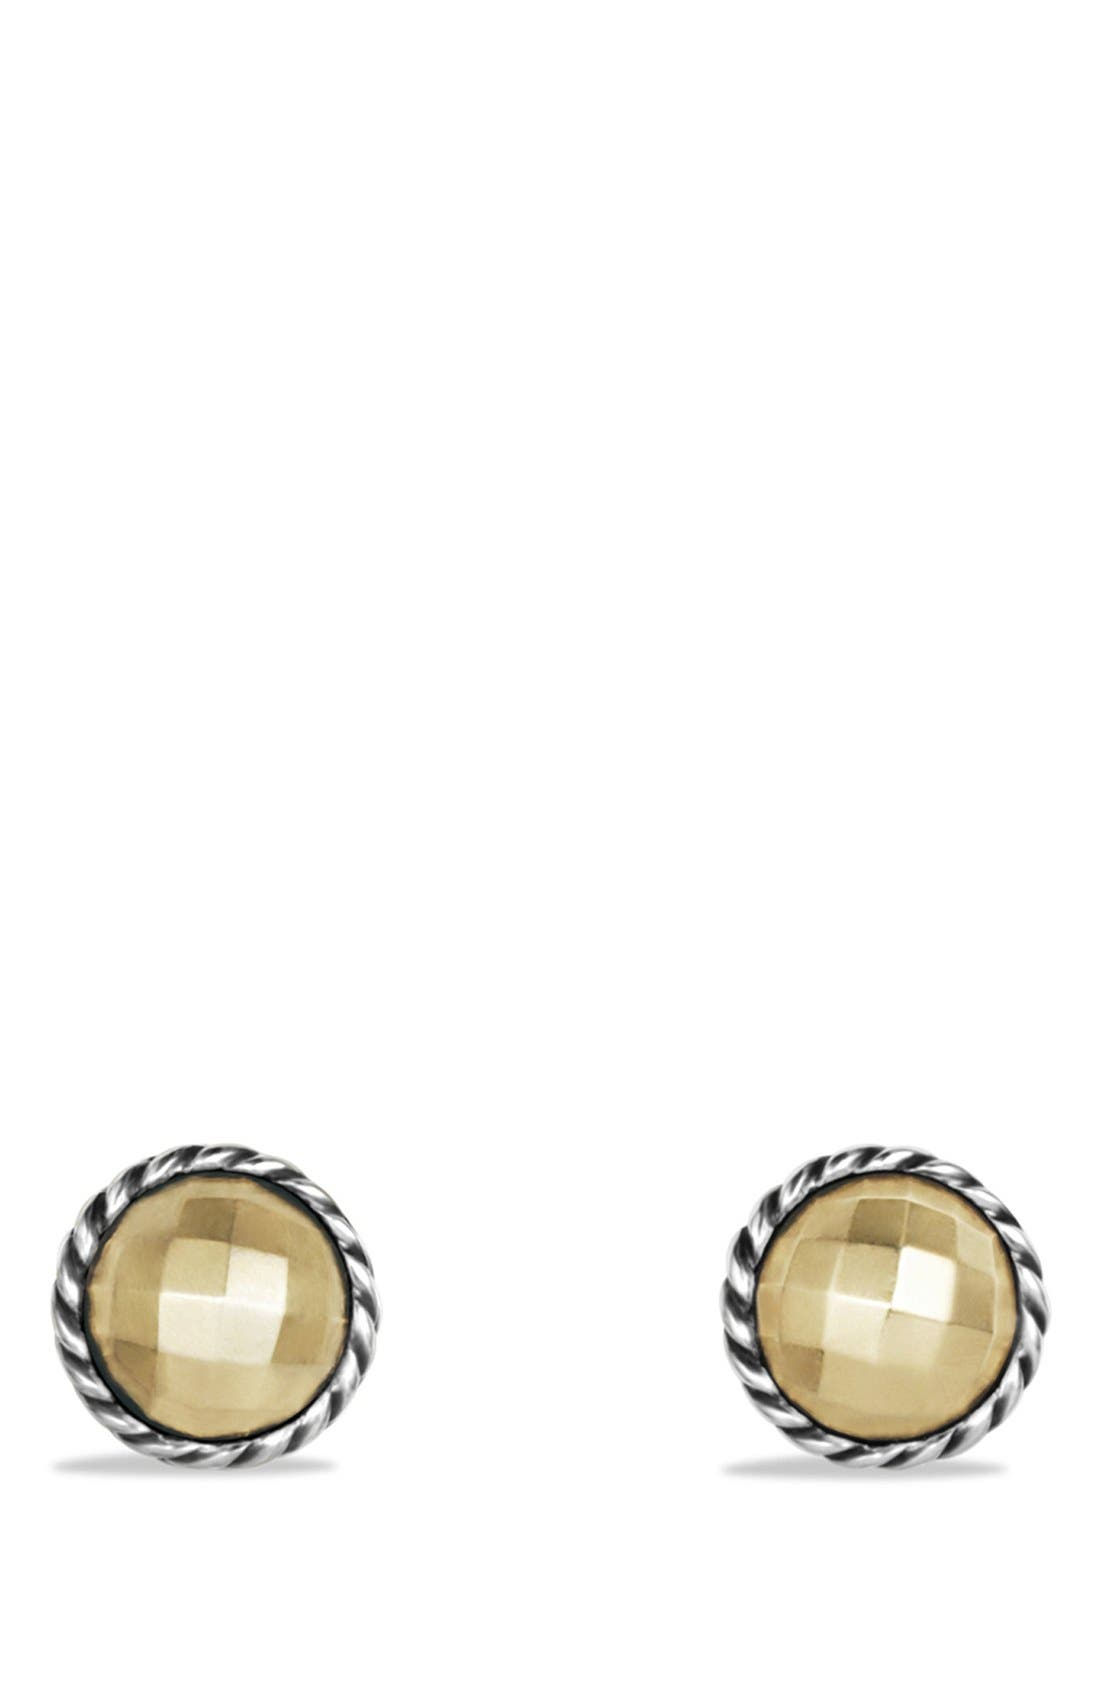 Main Image - David Yurman 'Châtelaine' Earrings with Gold